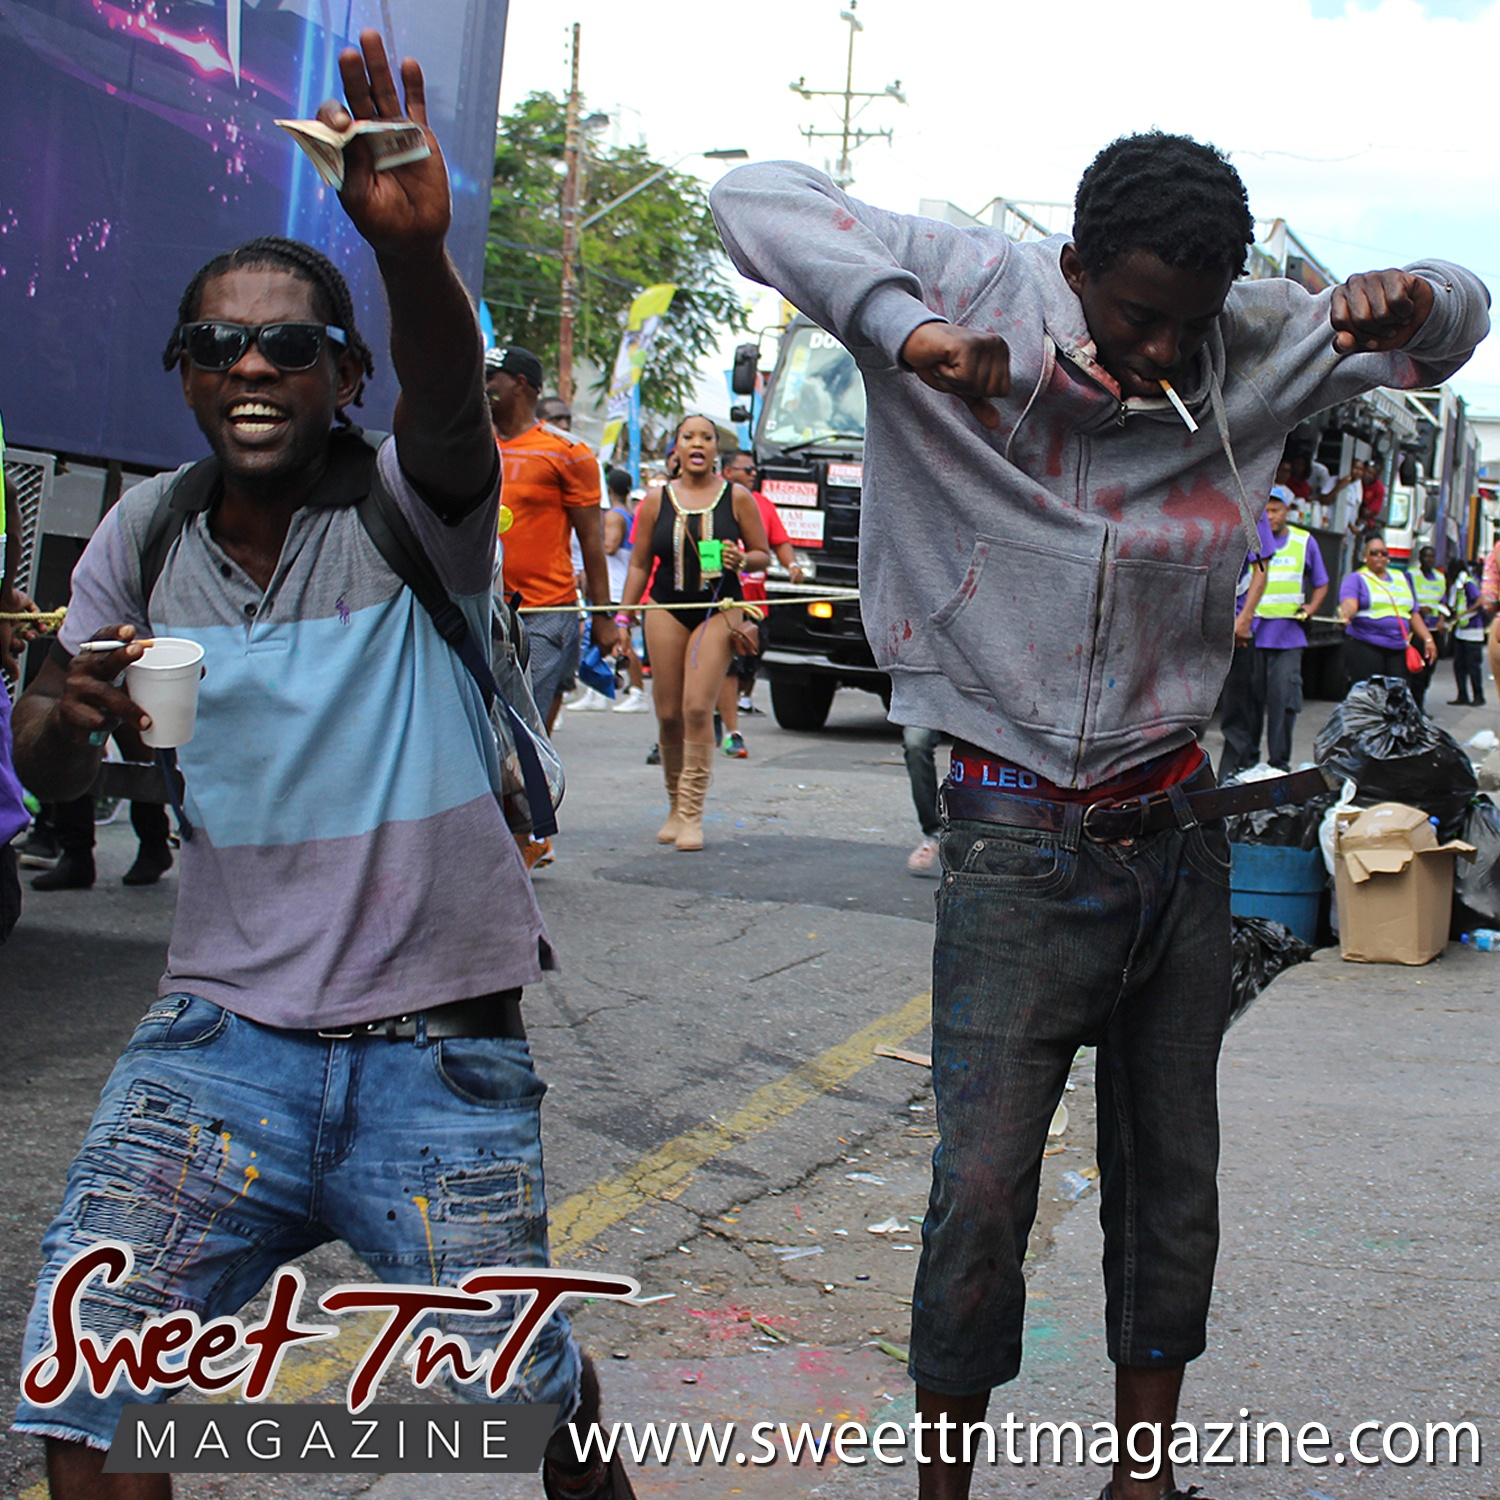 Mas men on the pavement on Ariapita Avenue, Carnival 2017 in sweet T&T for Sweet TnT Magazine, Culturama Publishing Company, for news in Trinidad, in Port of Spain, Trinidad and Tobago, with positive how to photography.